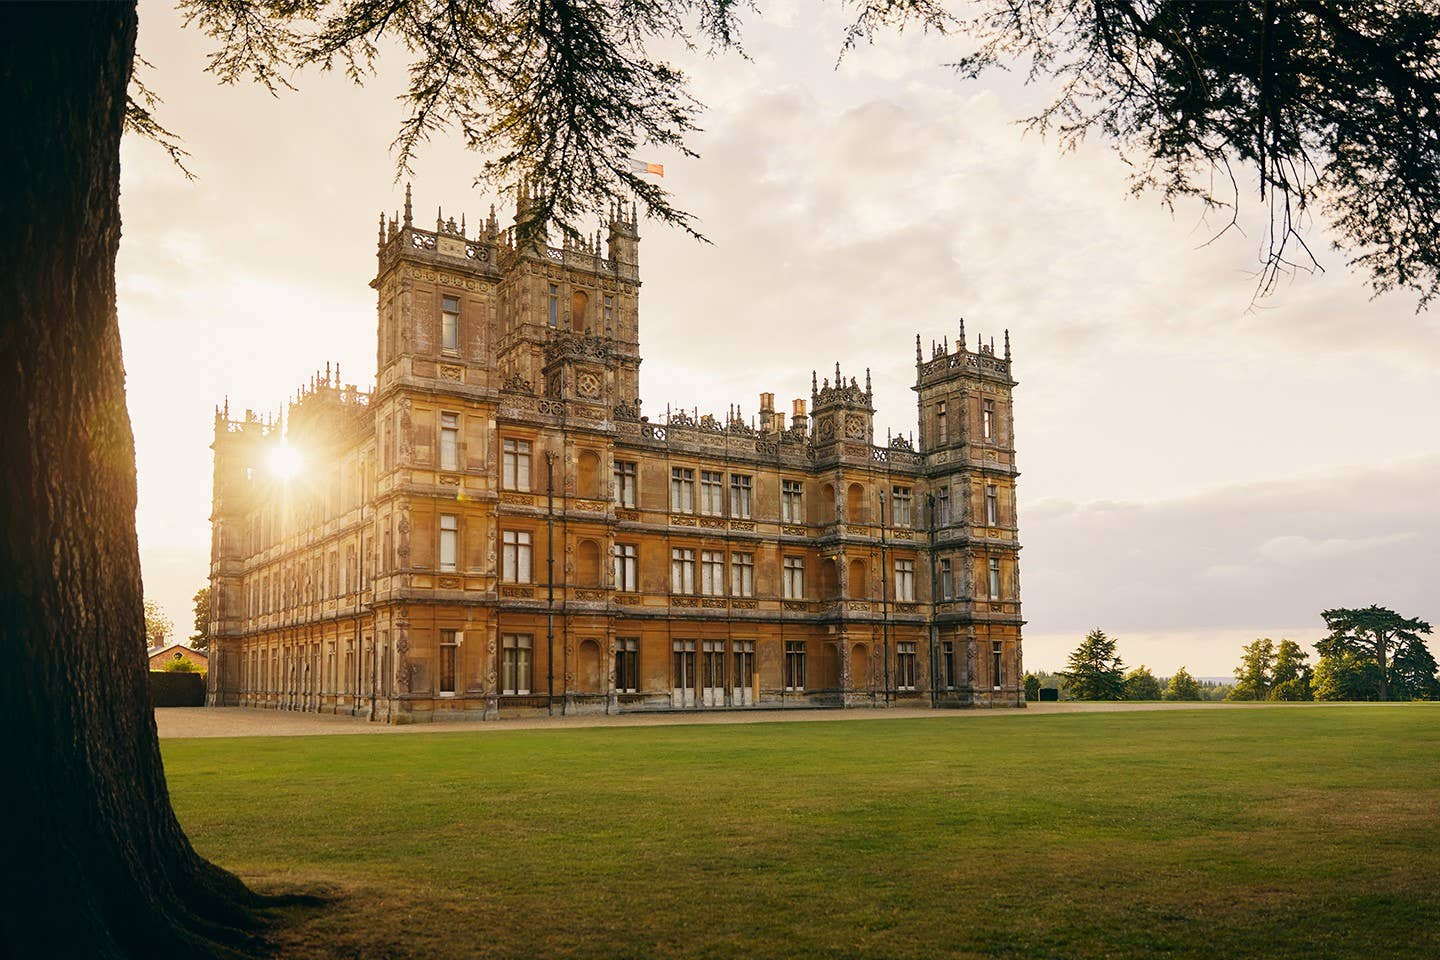 Mark your calendars: The Downton Abbey castle will be bookable on Airbnb for one night only